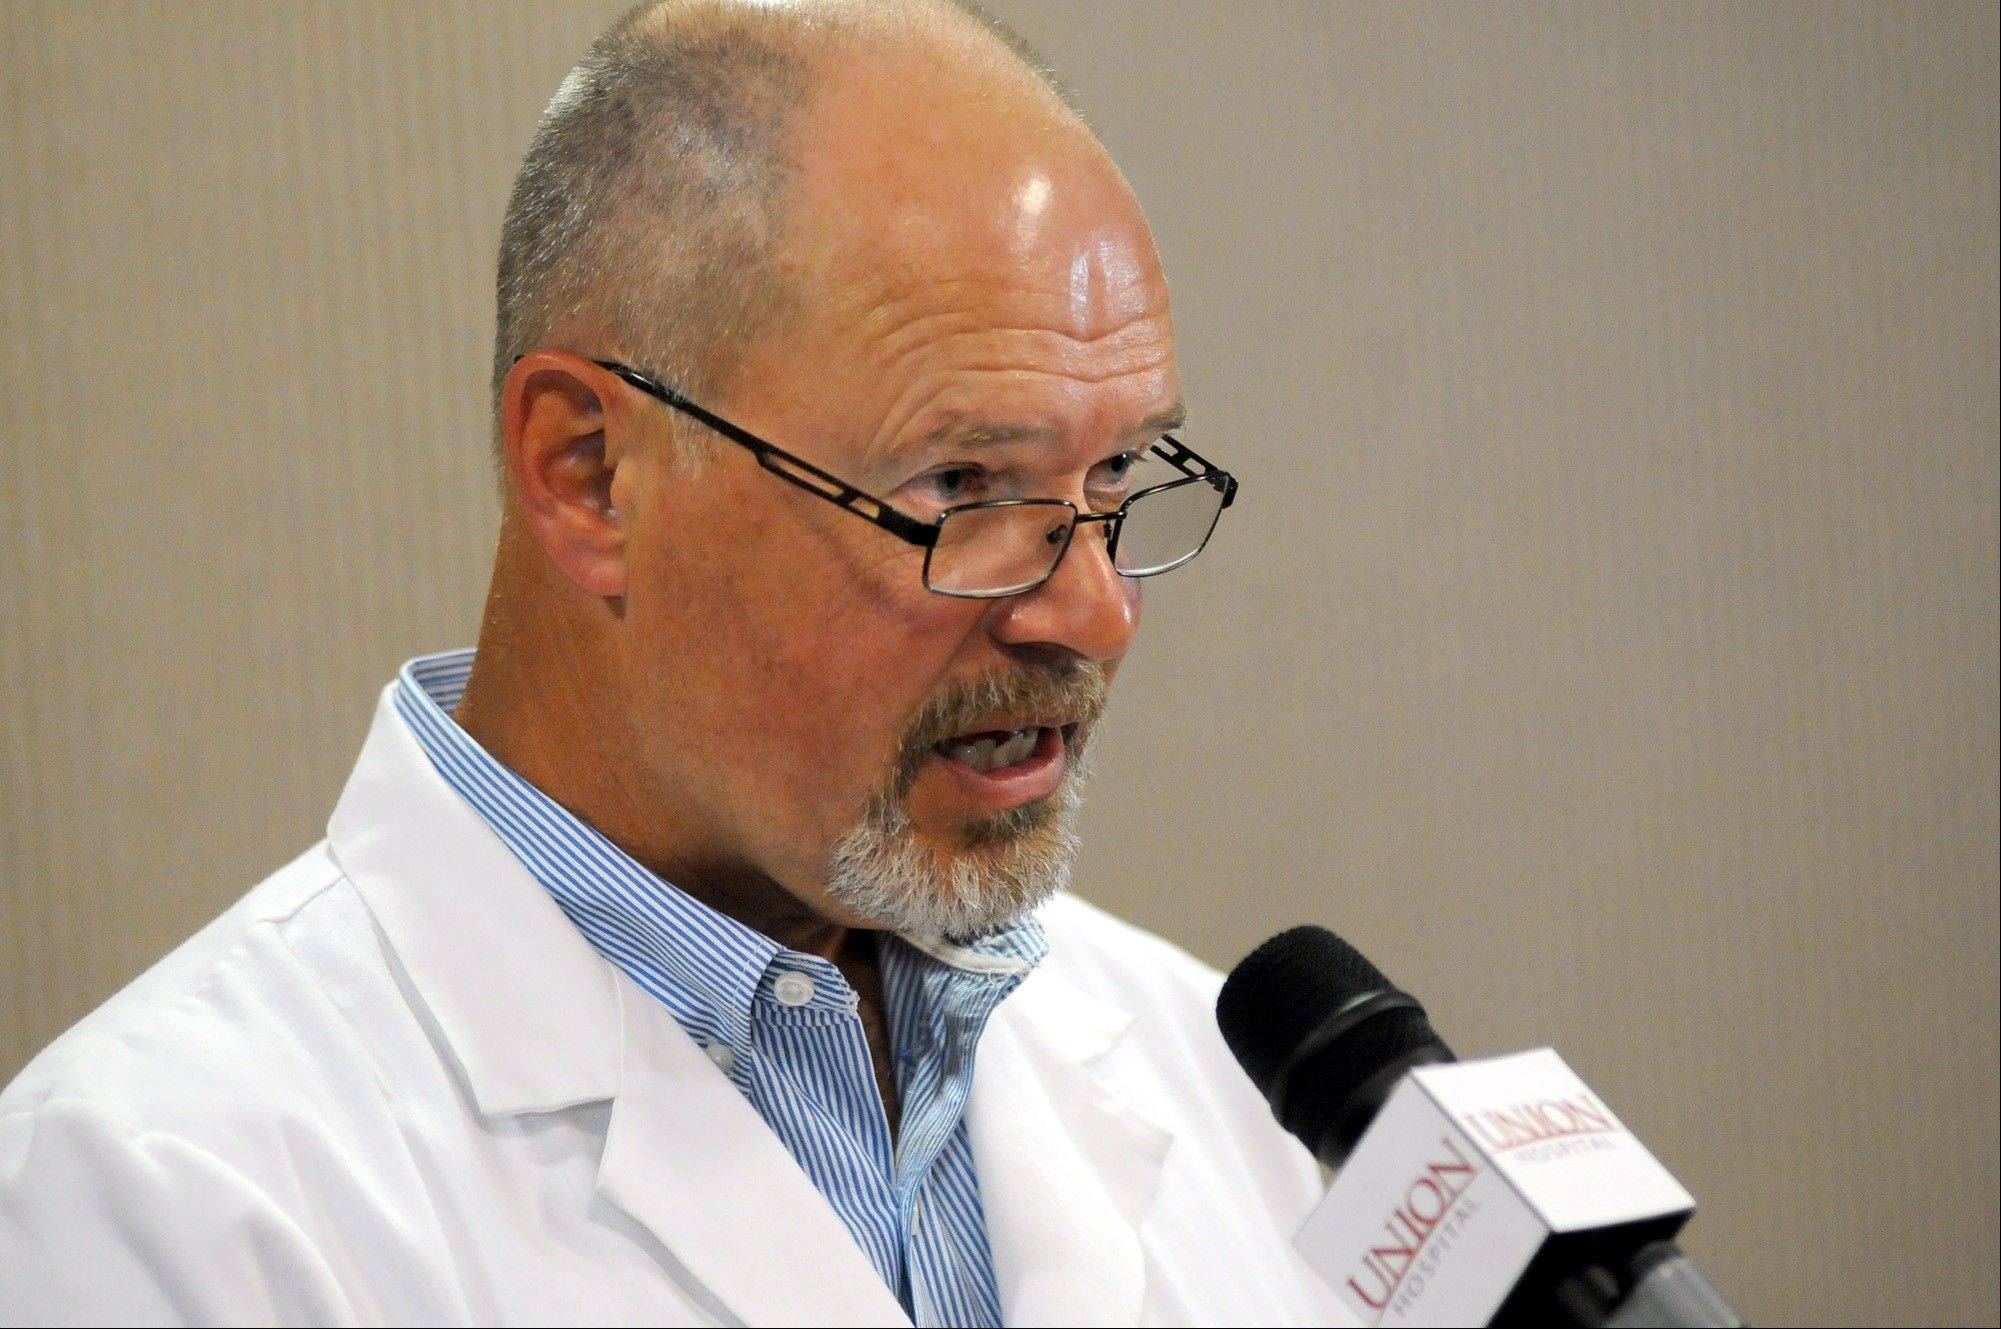 Union Hospital Chief Medical Officer Dr. John A. Bolinger talks with news media Friday in Terre Haute, Ind. Bolinger said 90 patients had been treated with a pain medication that's been linked to a deadly nationwide outbreak of fungal meningitis. All but five had been contacted by Friday afternoon, and the hospital was following up with letters. He said the injections were administered at the Wabash Valley Surgery Center between July 15 and Sept. 26.